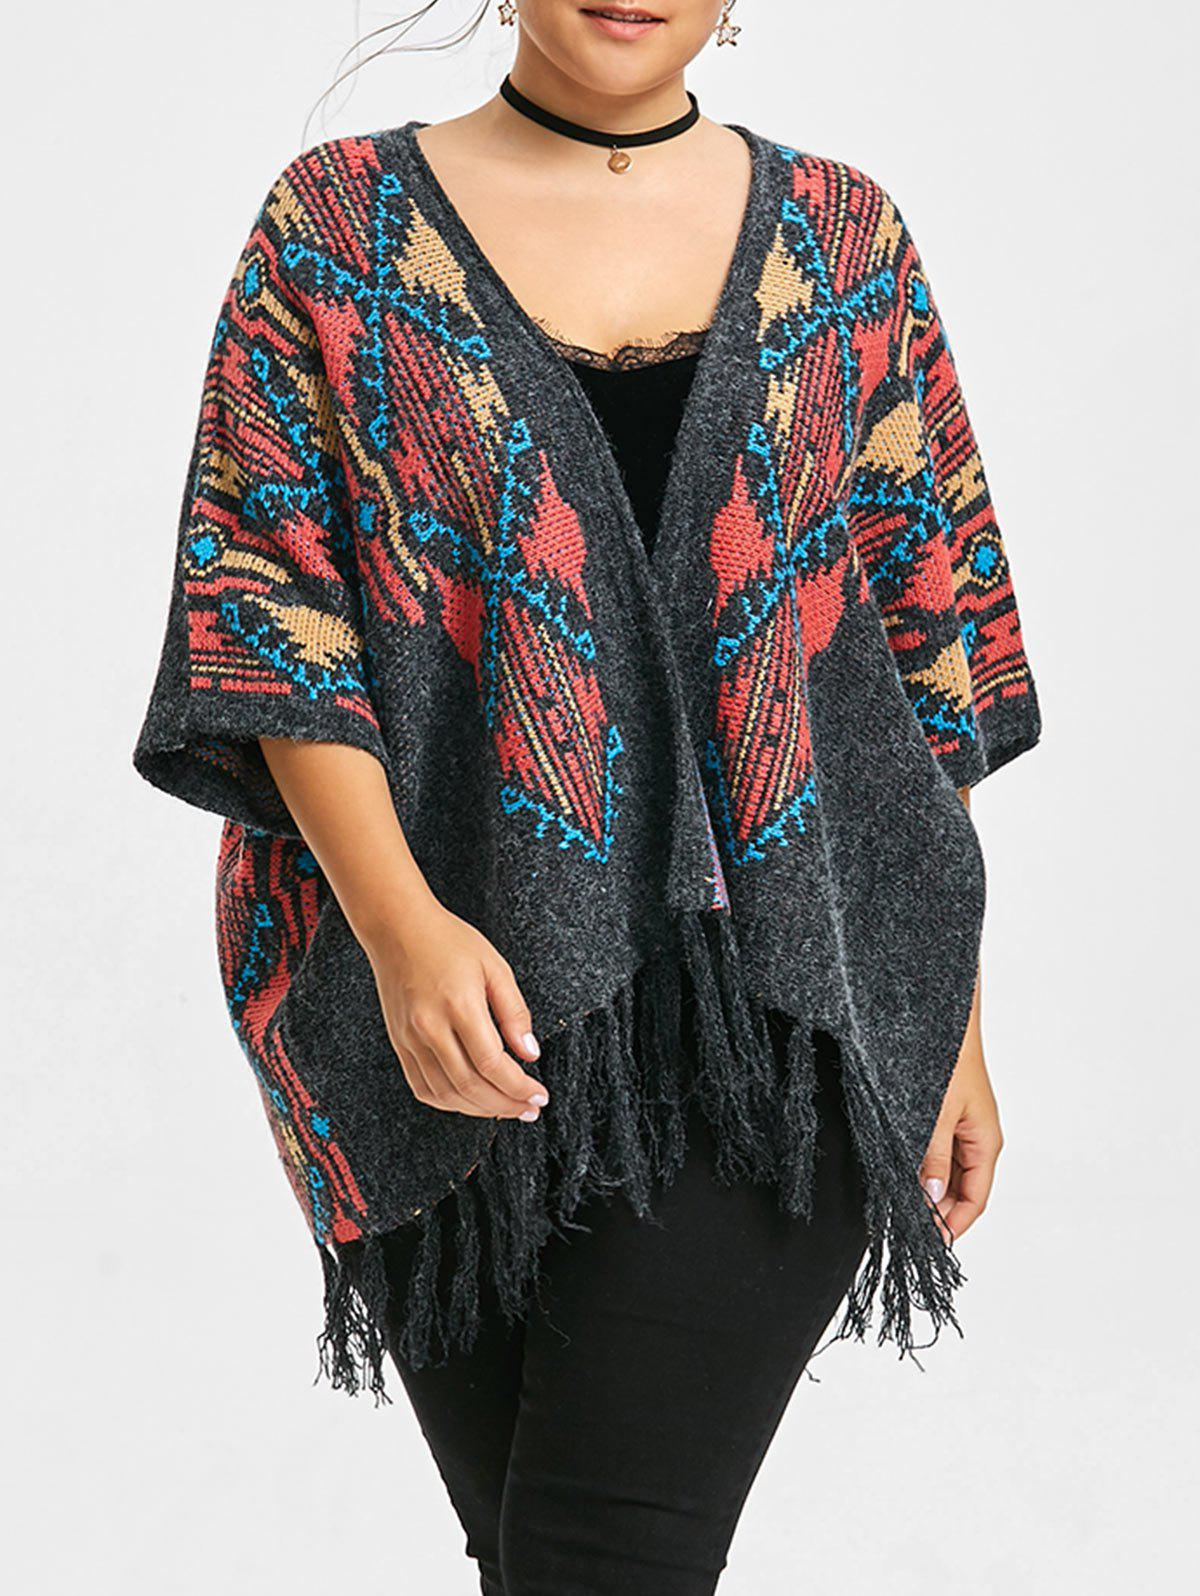 Fringe Plus Size Cape Sweater CardiganWOMEN<br><br>Size: ONE SIZE; Color: DARK GRAY; Type: Cardigans; Material: Polyester,Spandex; Sleeve Length: Three Quarter; Collar: Collarless; Style: Fashion; Season: Fall,Winter; Pattern Type: Geometric; Weight: 0.6050kg; Package Contents: 1 x Cardigan;